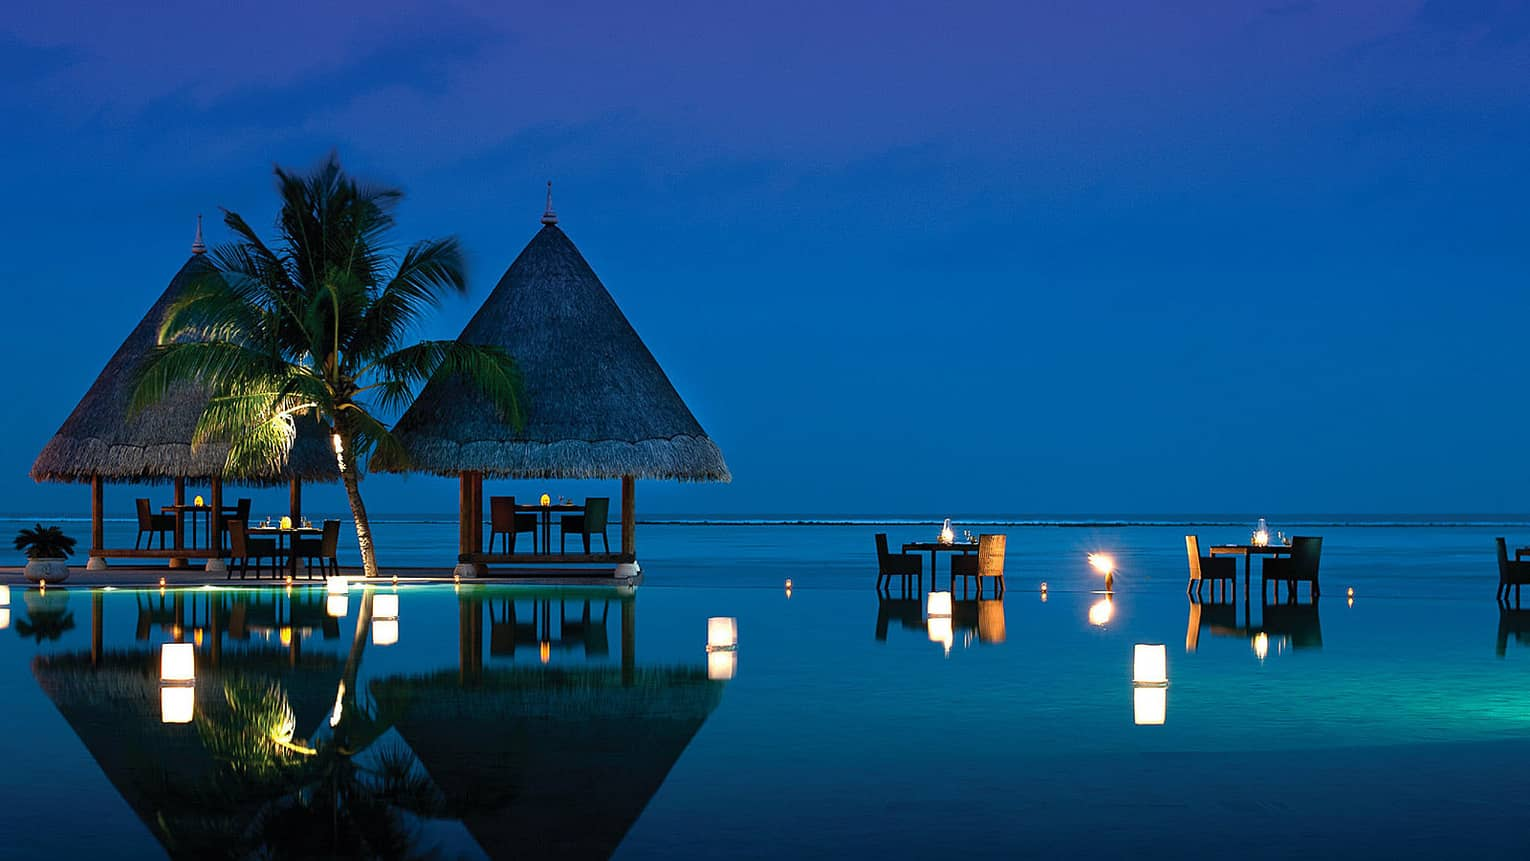 Kandu Grill at night, with candlelit dining tables under a towering palm, perched on ocean and infinity pool